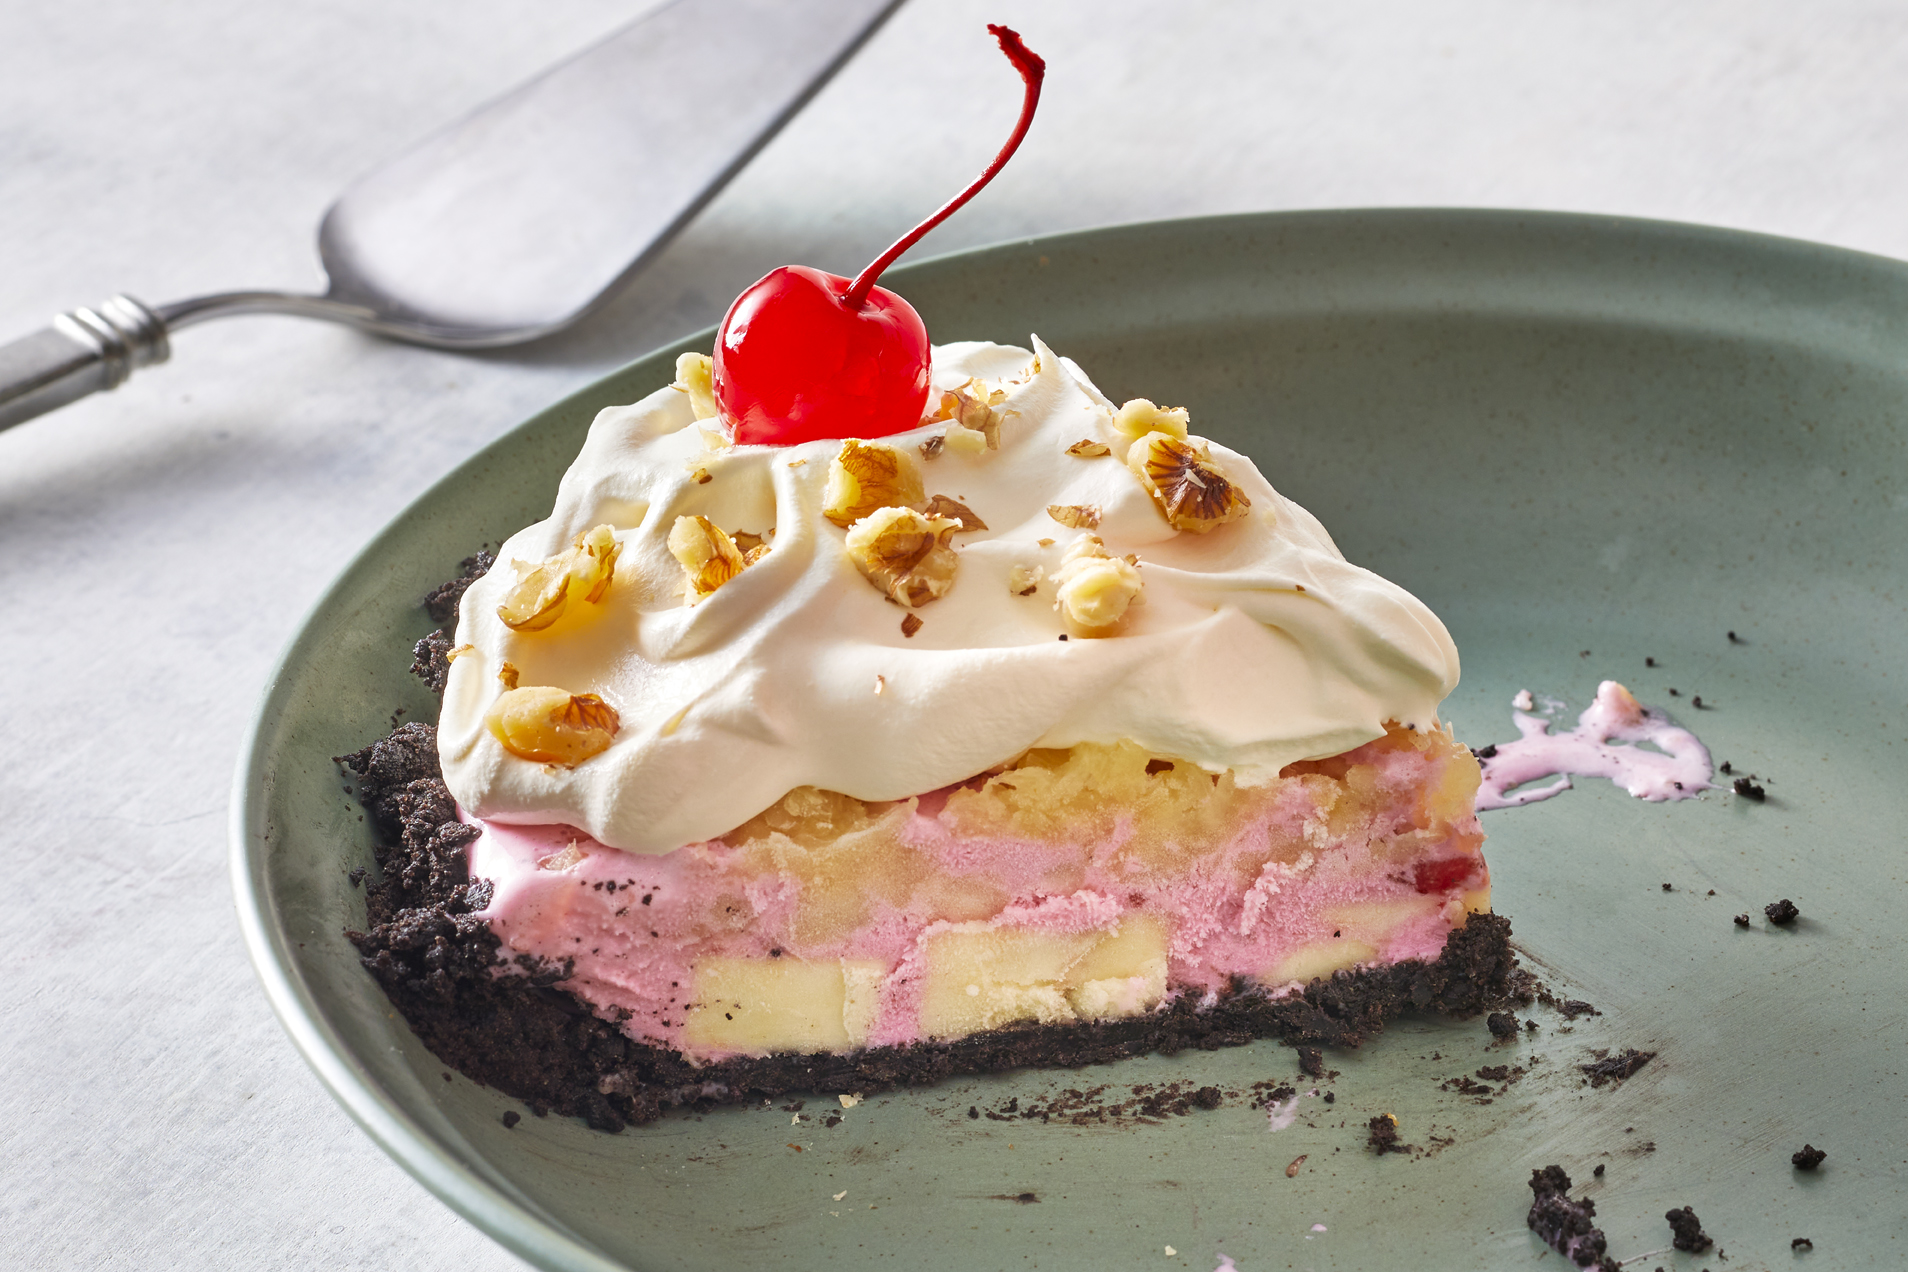 A single slice of banana split cream pie remains in an otherwise empty pie tin. Slice is topped with walnuts and a maraschino cherry